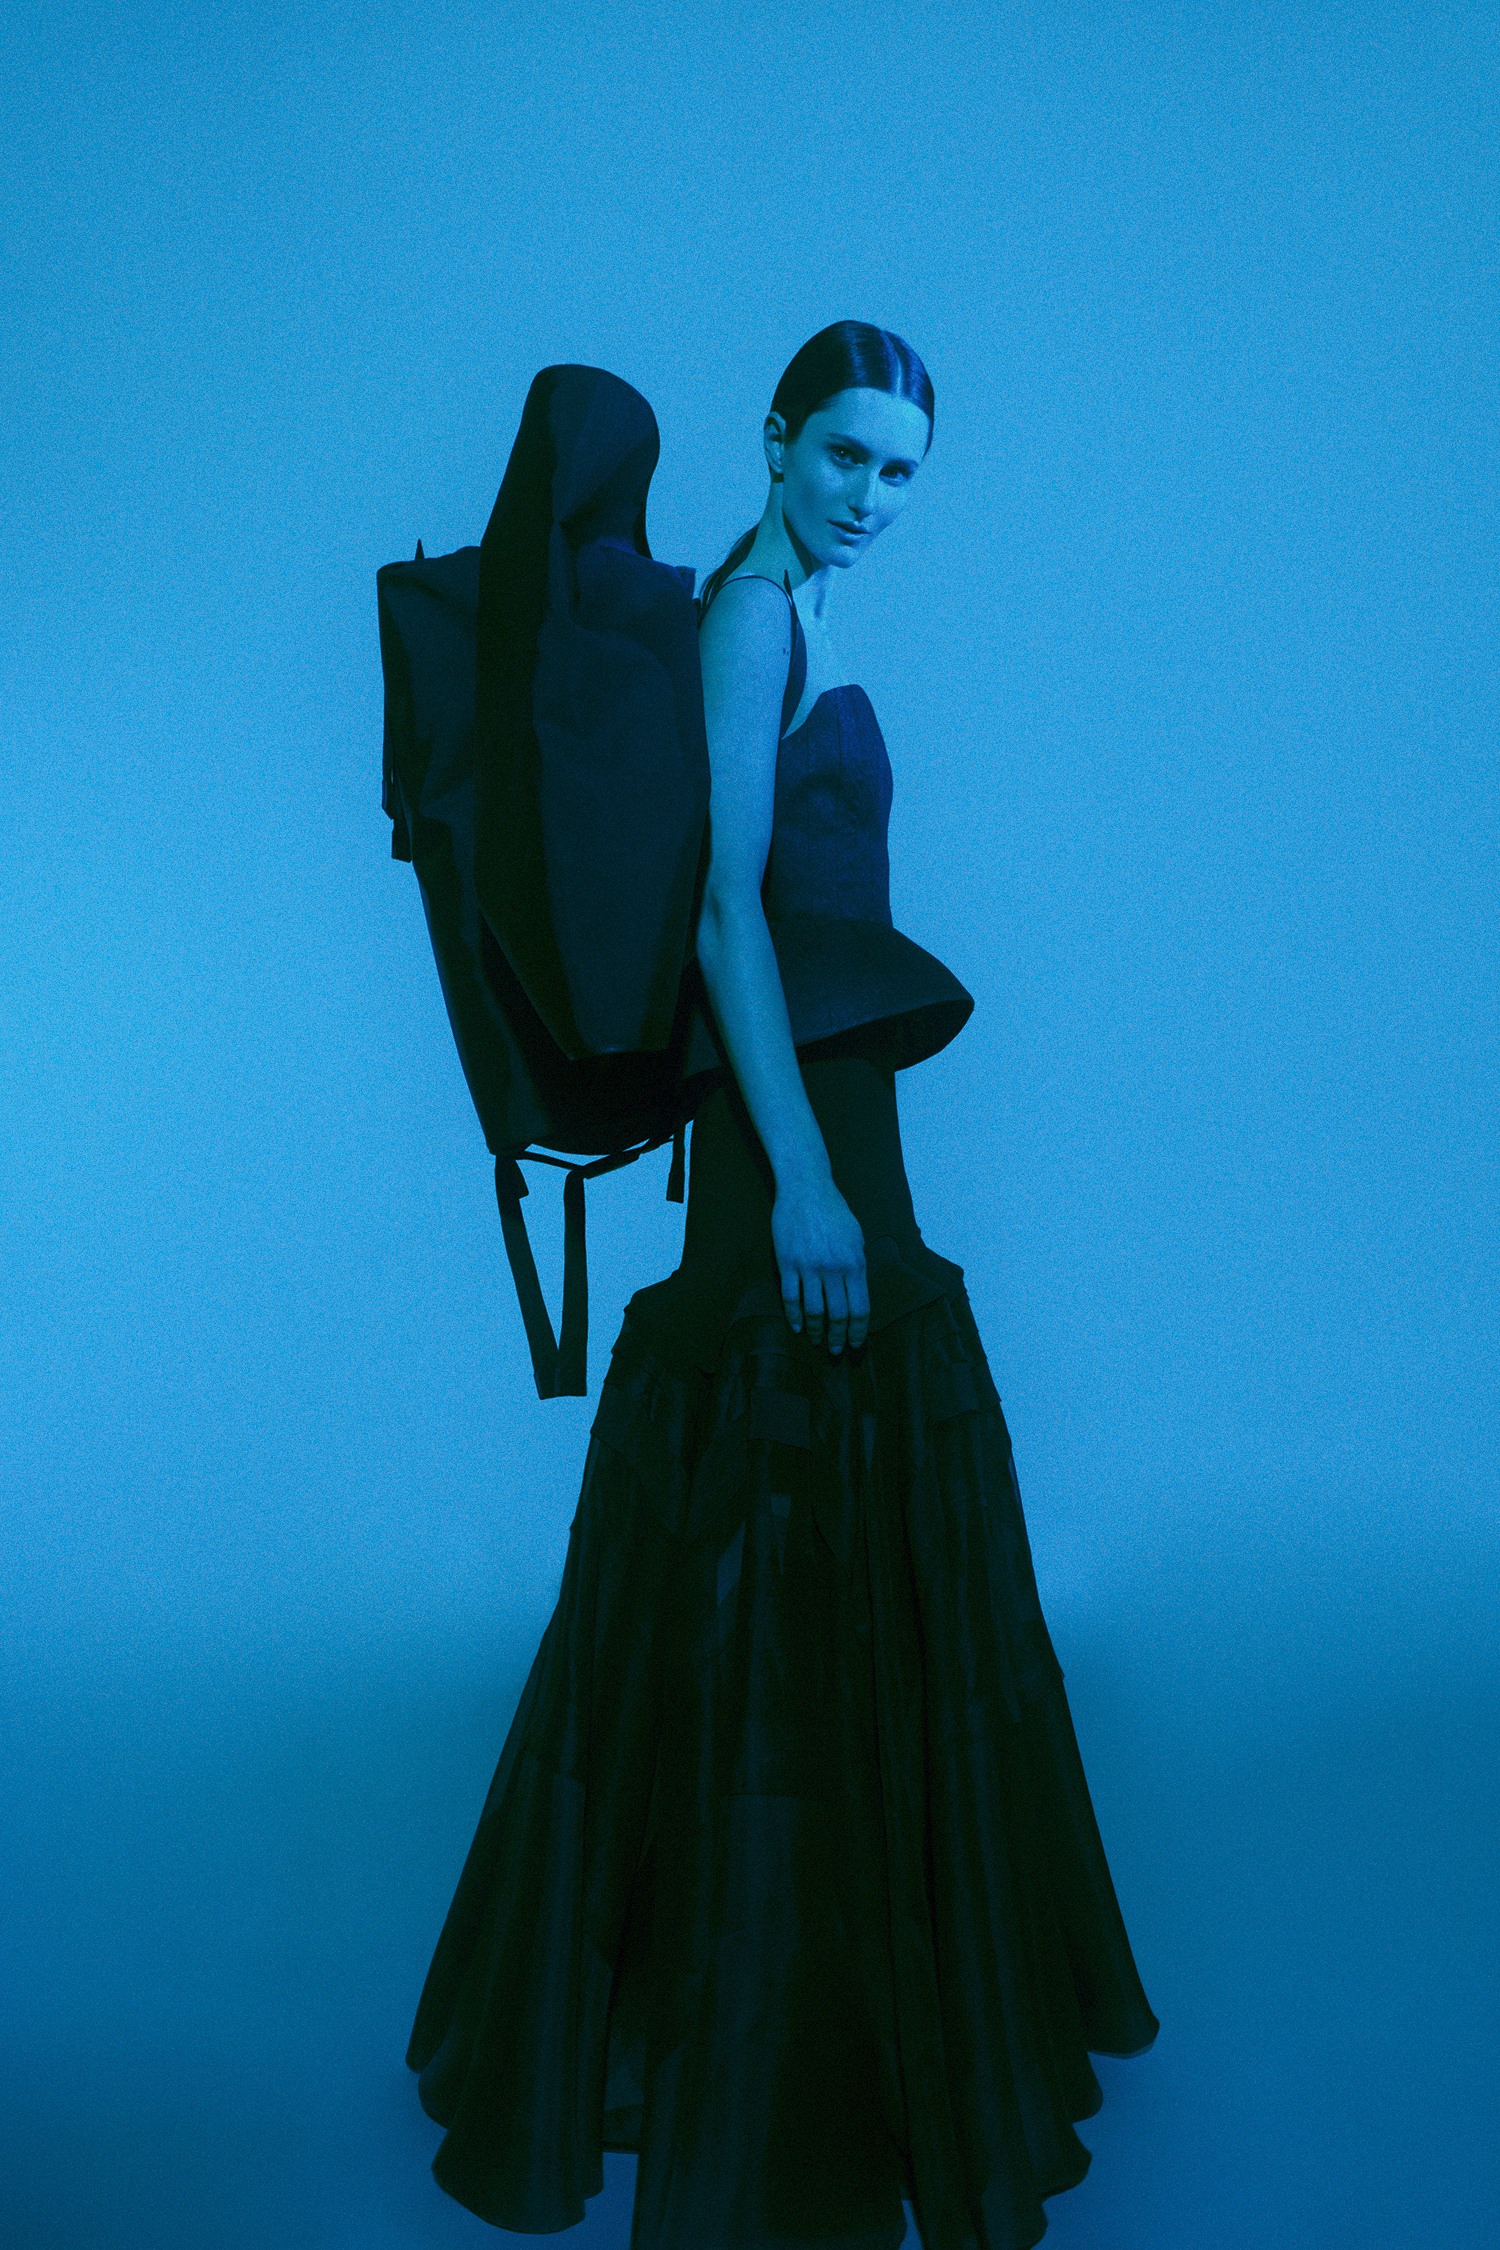 26 - Givenchy Haute Couture - Neil Krug.jpg